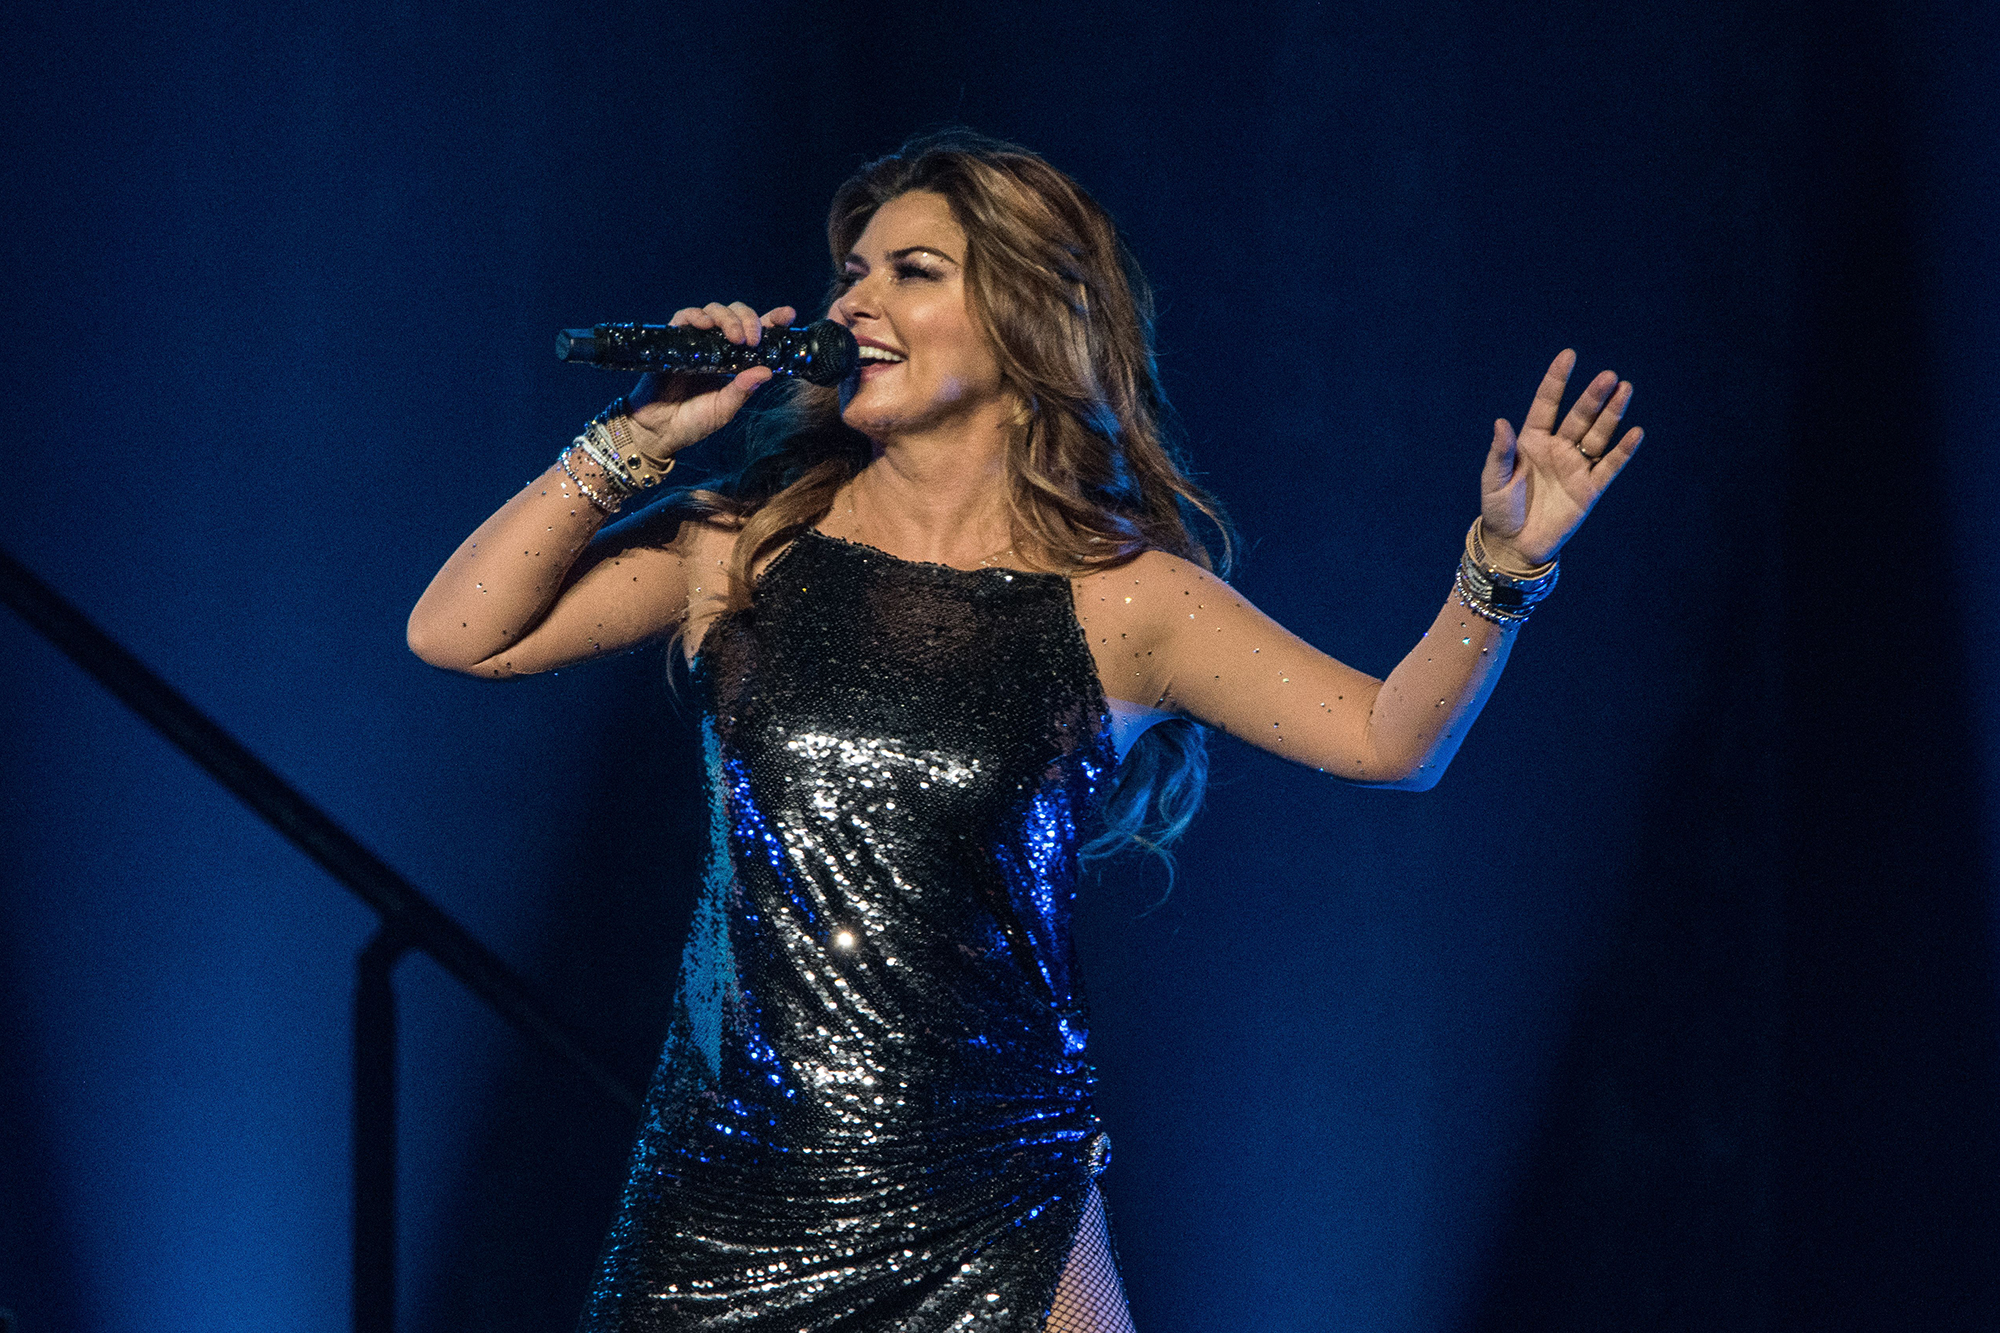 Shania Twain Opens up About Her Battle With Lyme Disease |Shania Twain